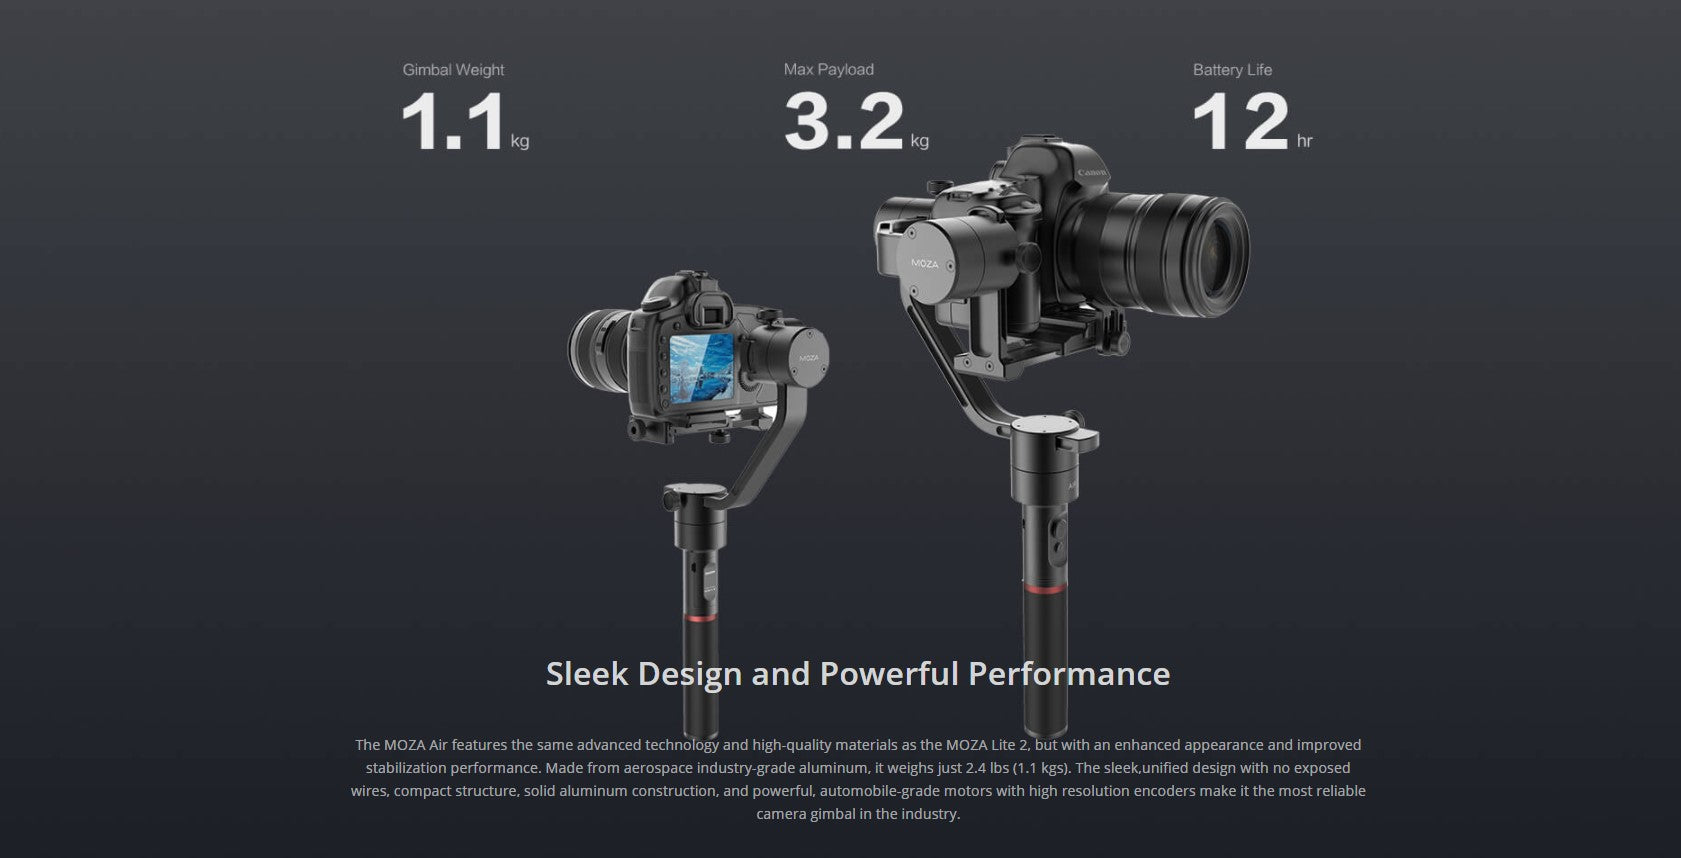 moza-air-wireless-phone-charging-gimbal-phone-camera-stabilizer-wireless-charging-full-expansion-sport-gear-mode-zoom-control-focus-control-app-function-sleek-design